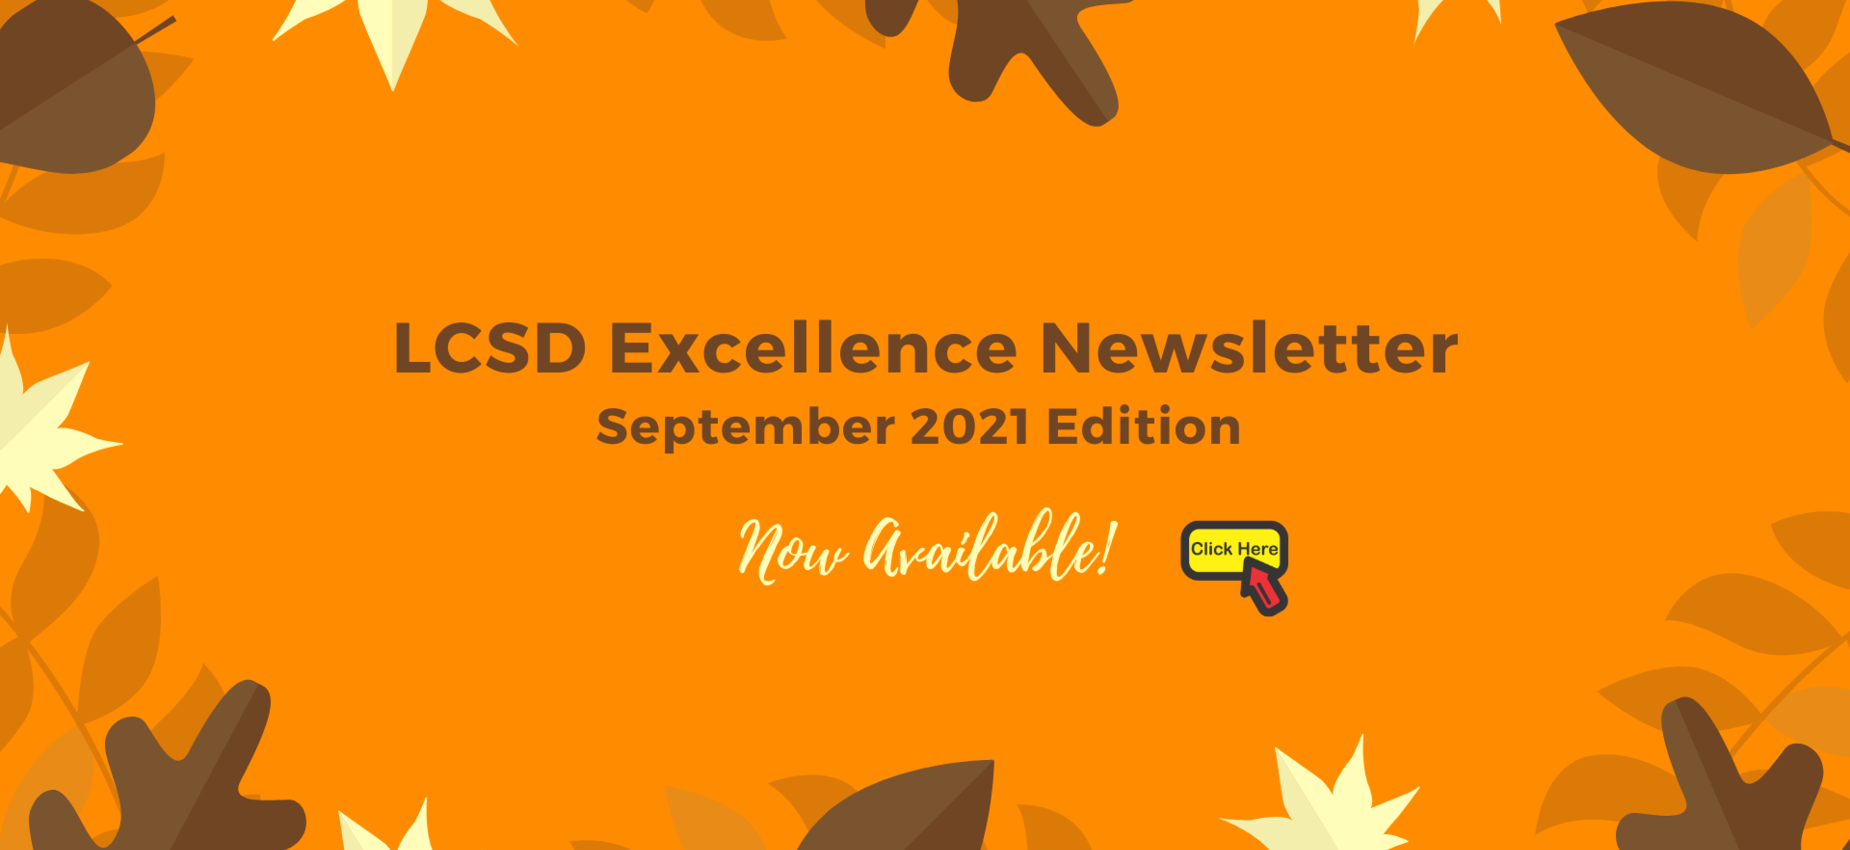 LCSD Excellence Newsletter Graphic